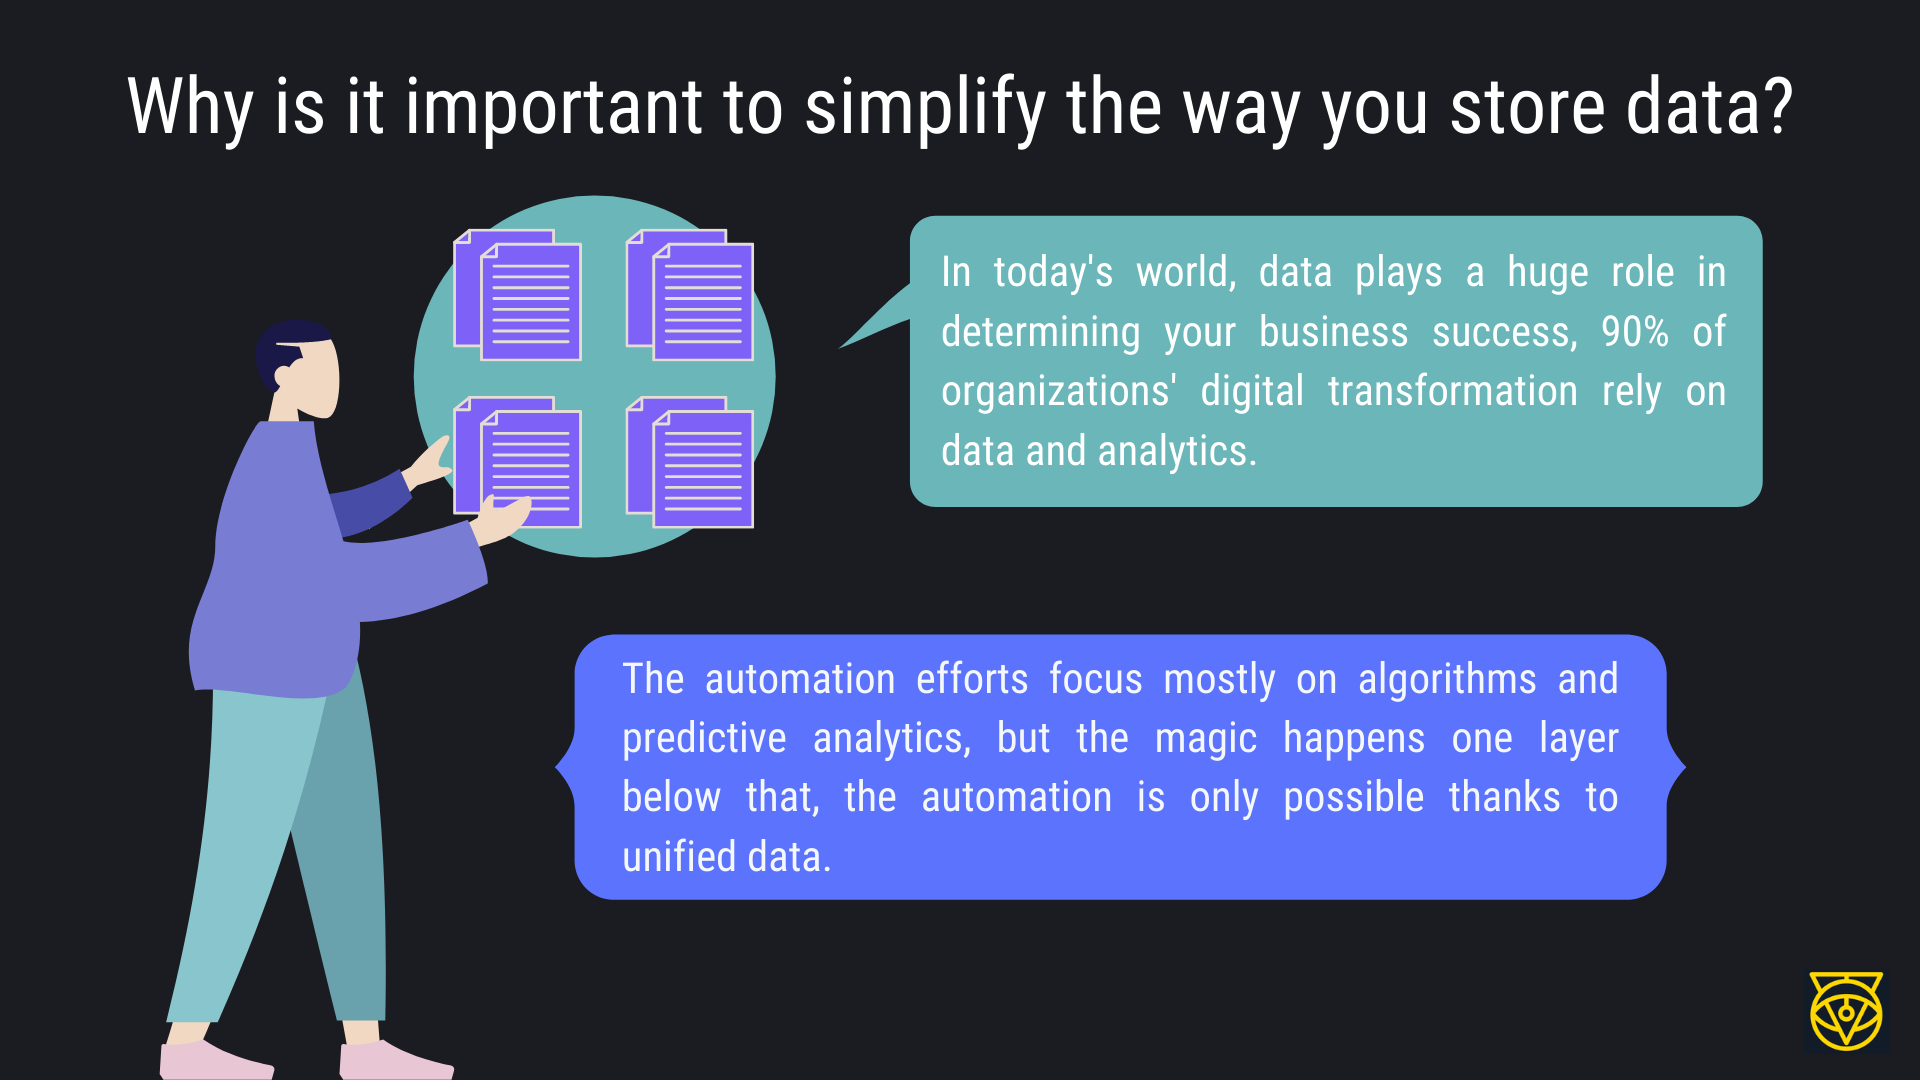 Why is it important to simplify the way you store data?